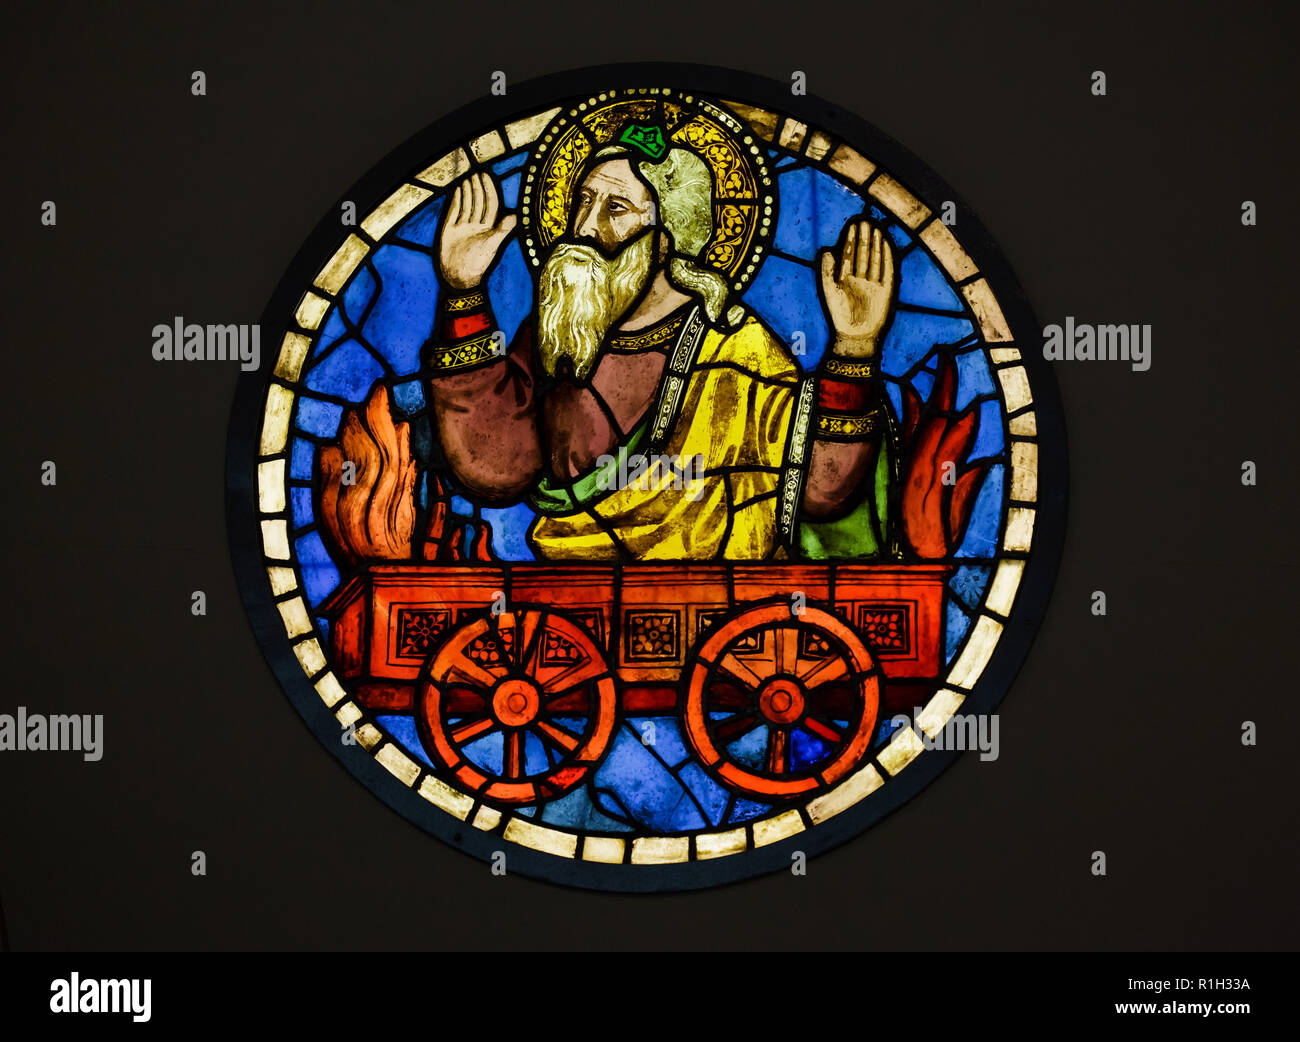 Elias the Prophet on the Fiery Chariot depicted in the stained-glass window designed by Italian medieval painter Taddeo Gaddi (1320-1340) on display in the Museo dell'Opera di Santa Croce (Museum of the Works of the Basilica of the Holy Cross) in Florence, Tuscany, Italy. Stock Photo